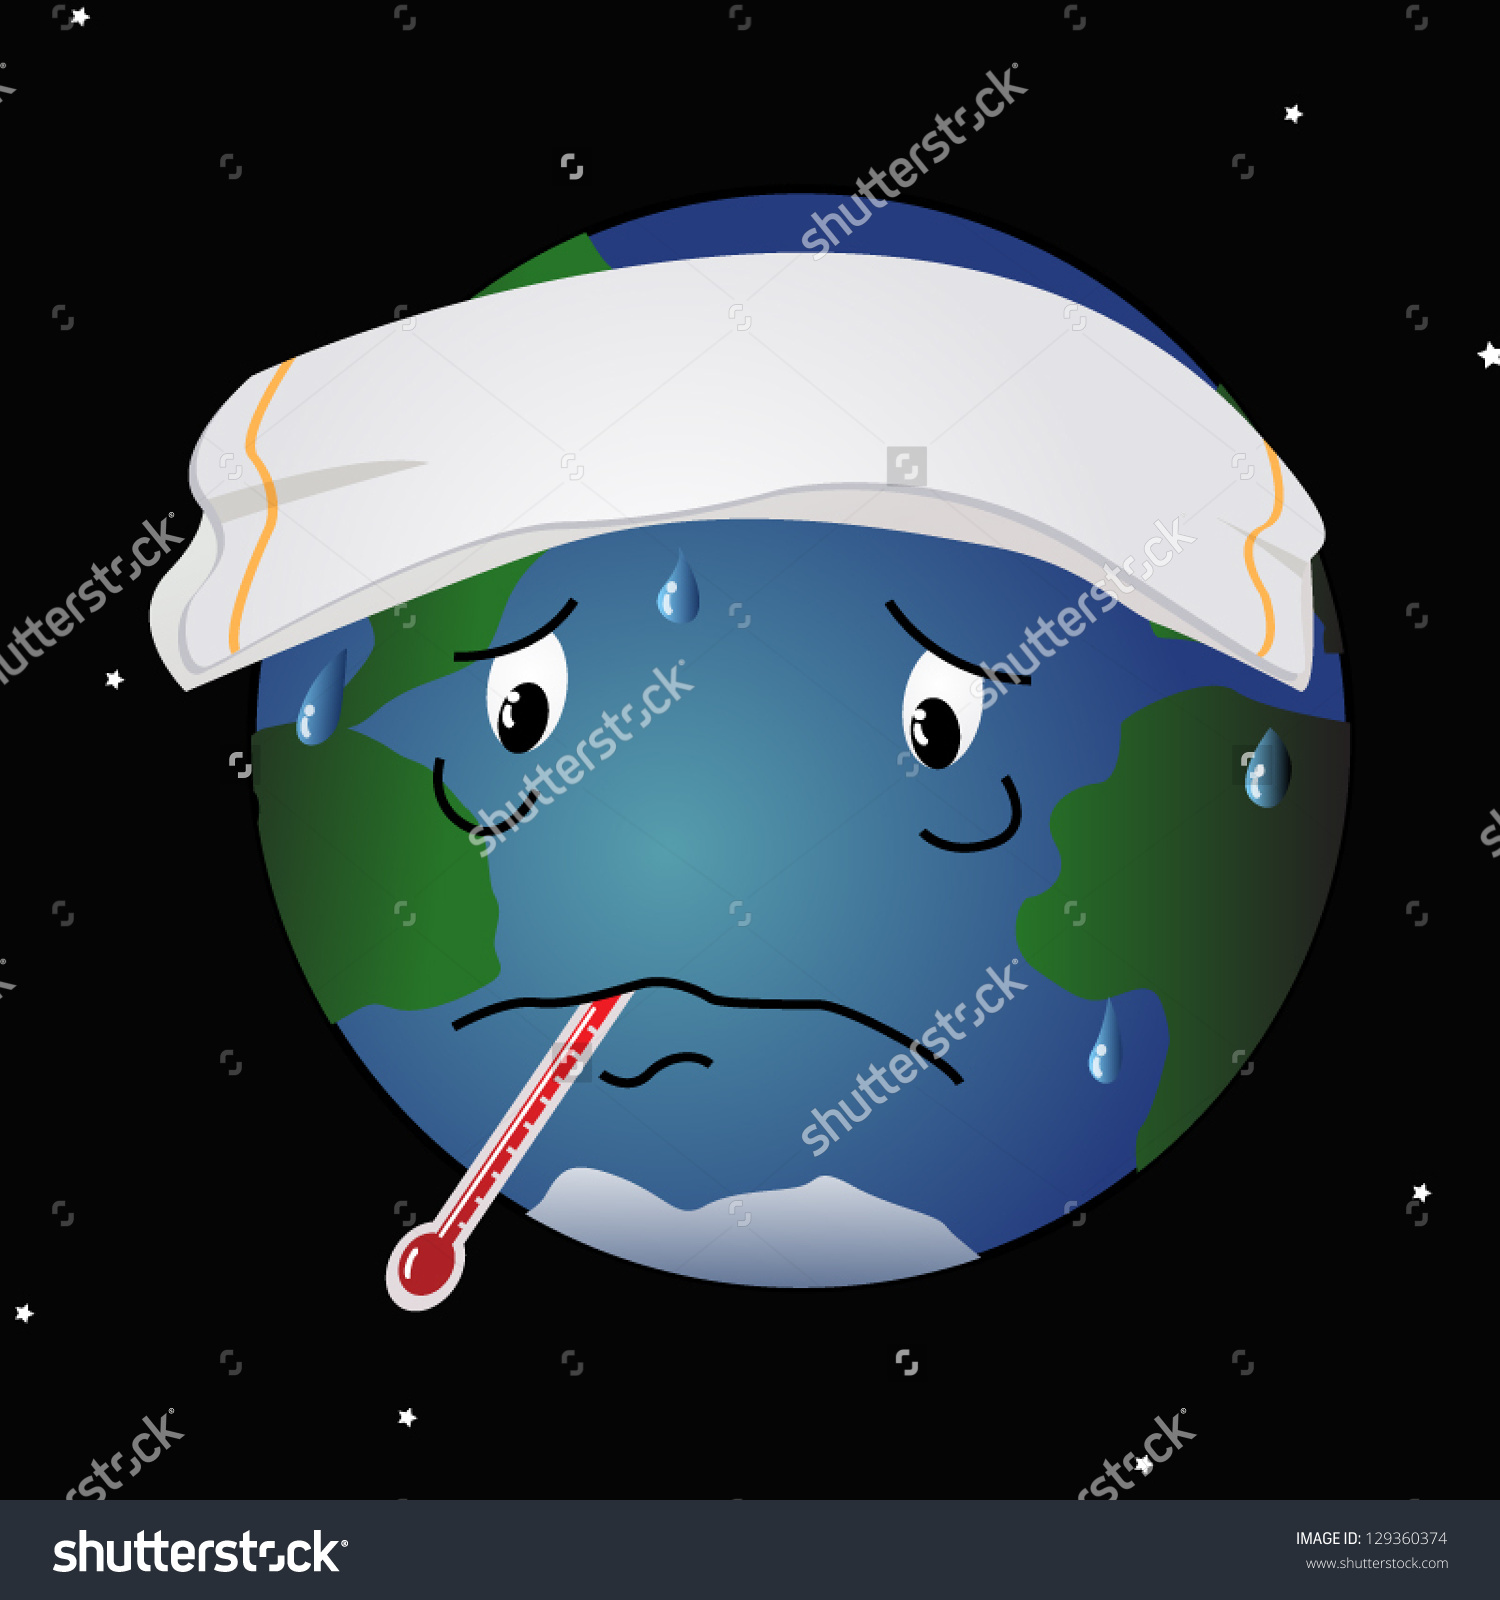 Cartoon Like Illustration Planet Earth Thermometer Stock Vector.